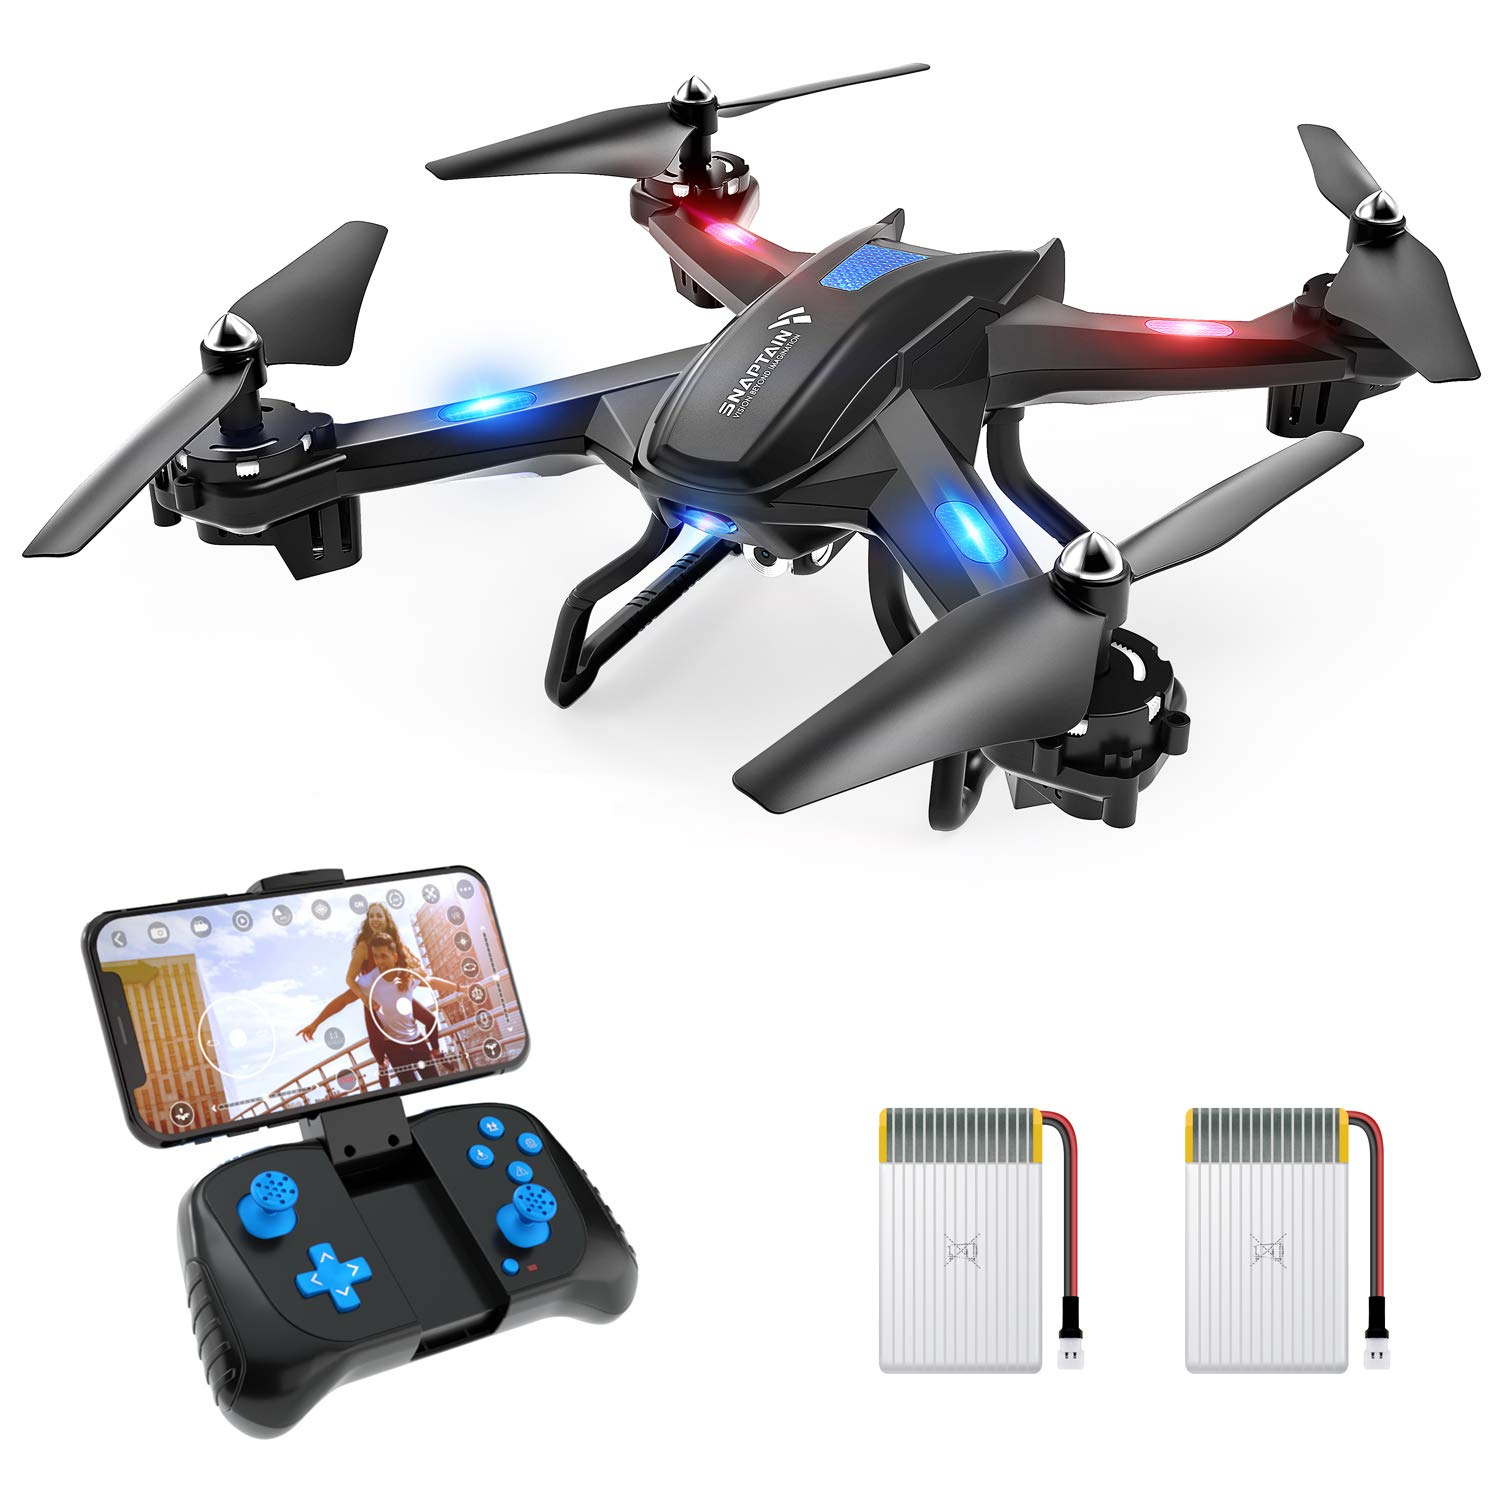 SNAPTAIN S5C WiFi FPV Drone with 720P HD Camera, Voice Control, Gesture Control RC Quadcopter for Beginners with Altitude Hold, Gravity Sensor, RTF One Key Take Off/Landing, Compatible w/VR Headset by SNAPTAIN